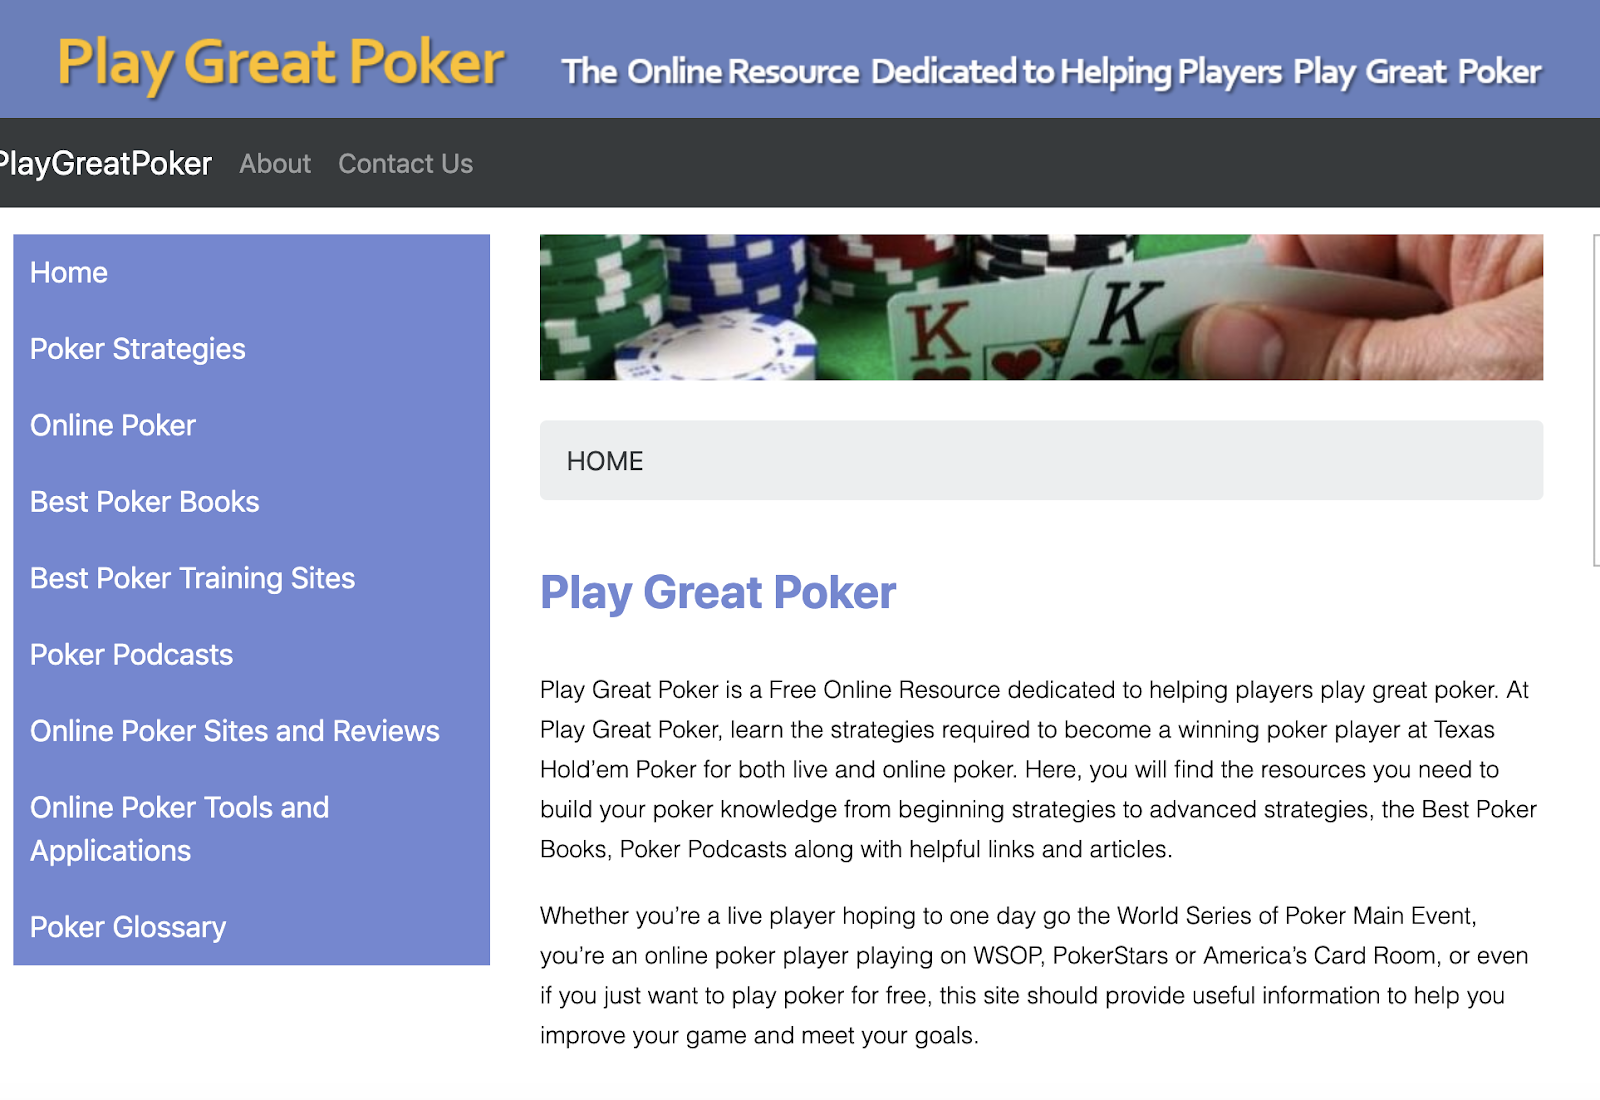 play great poker author used website to promote book